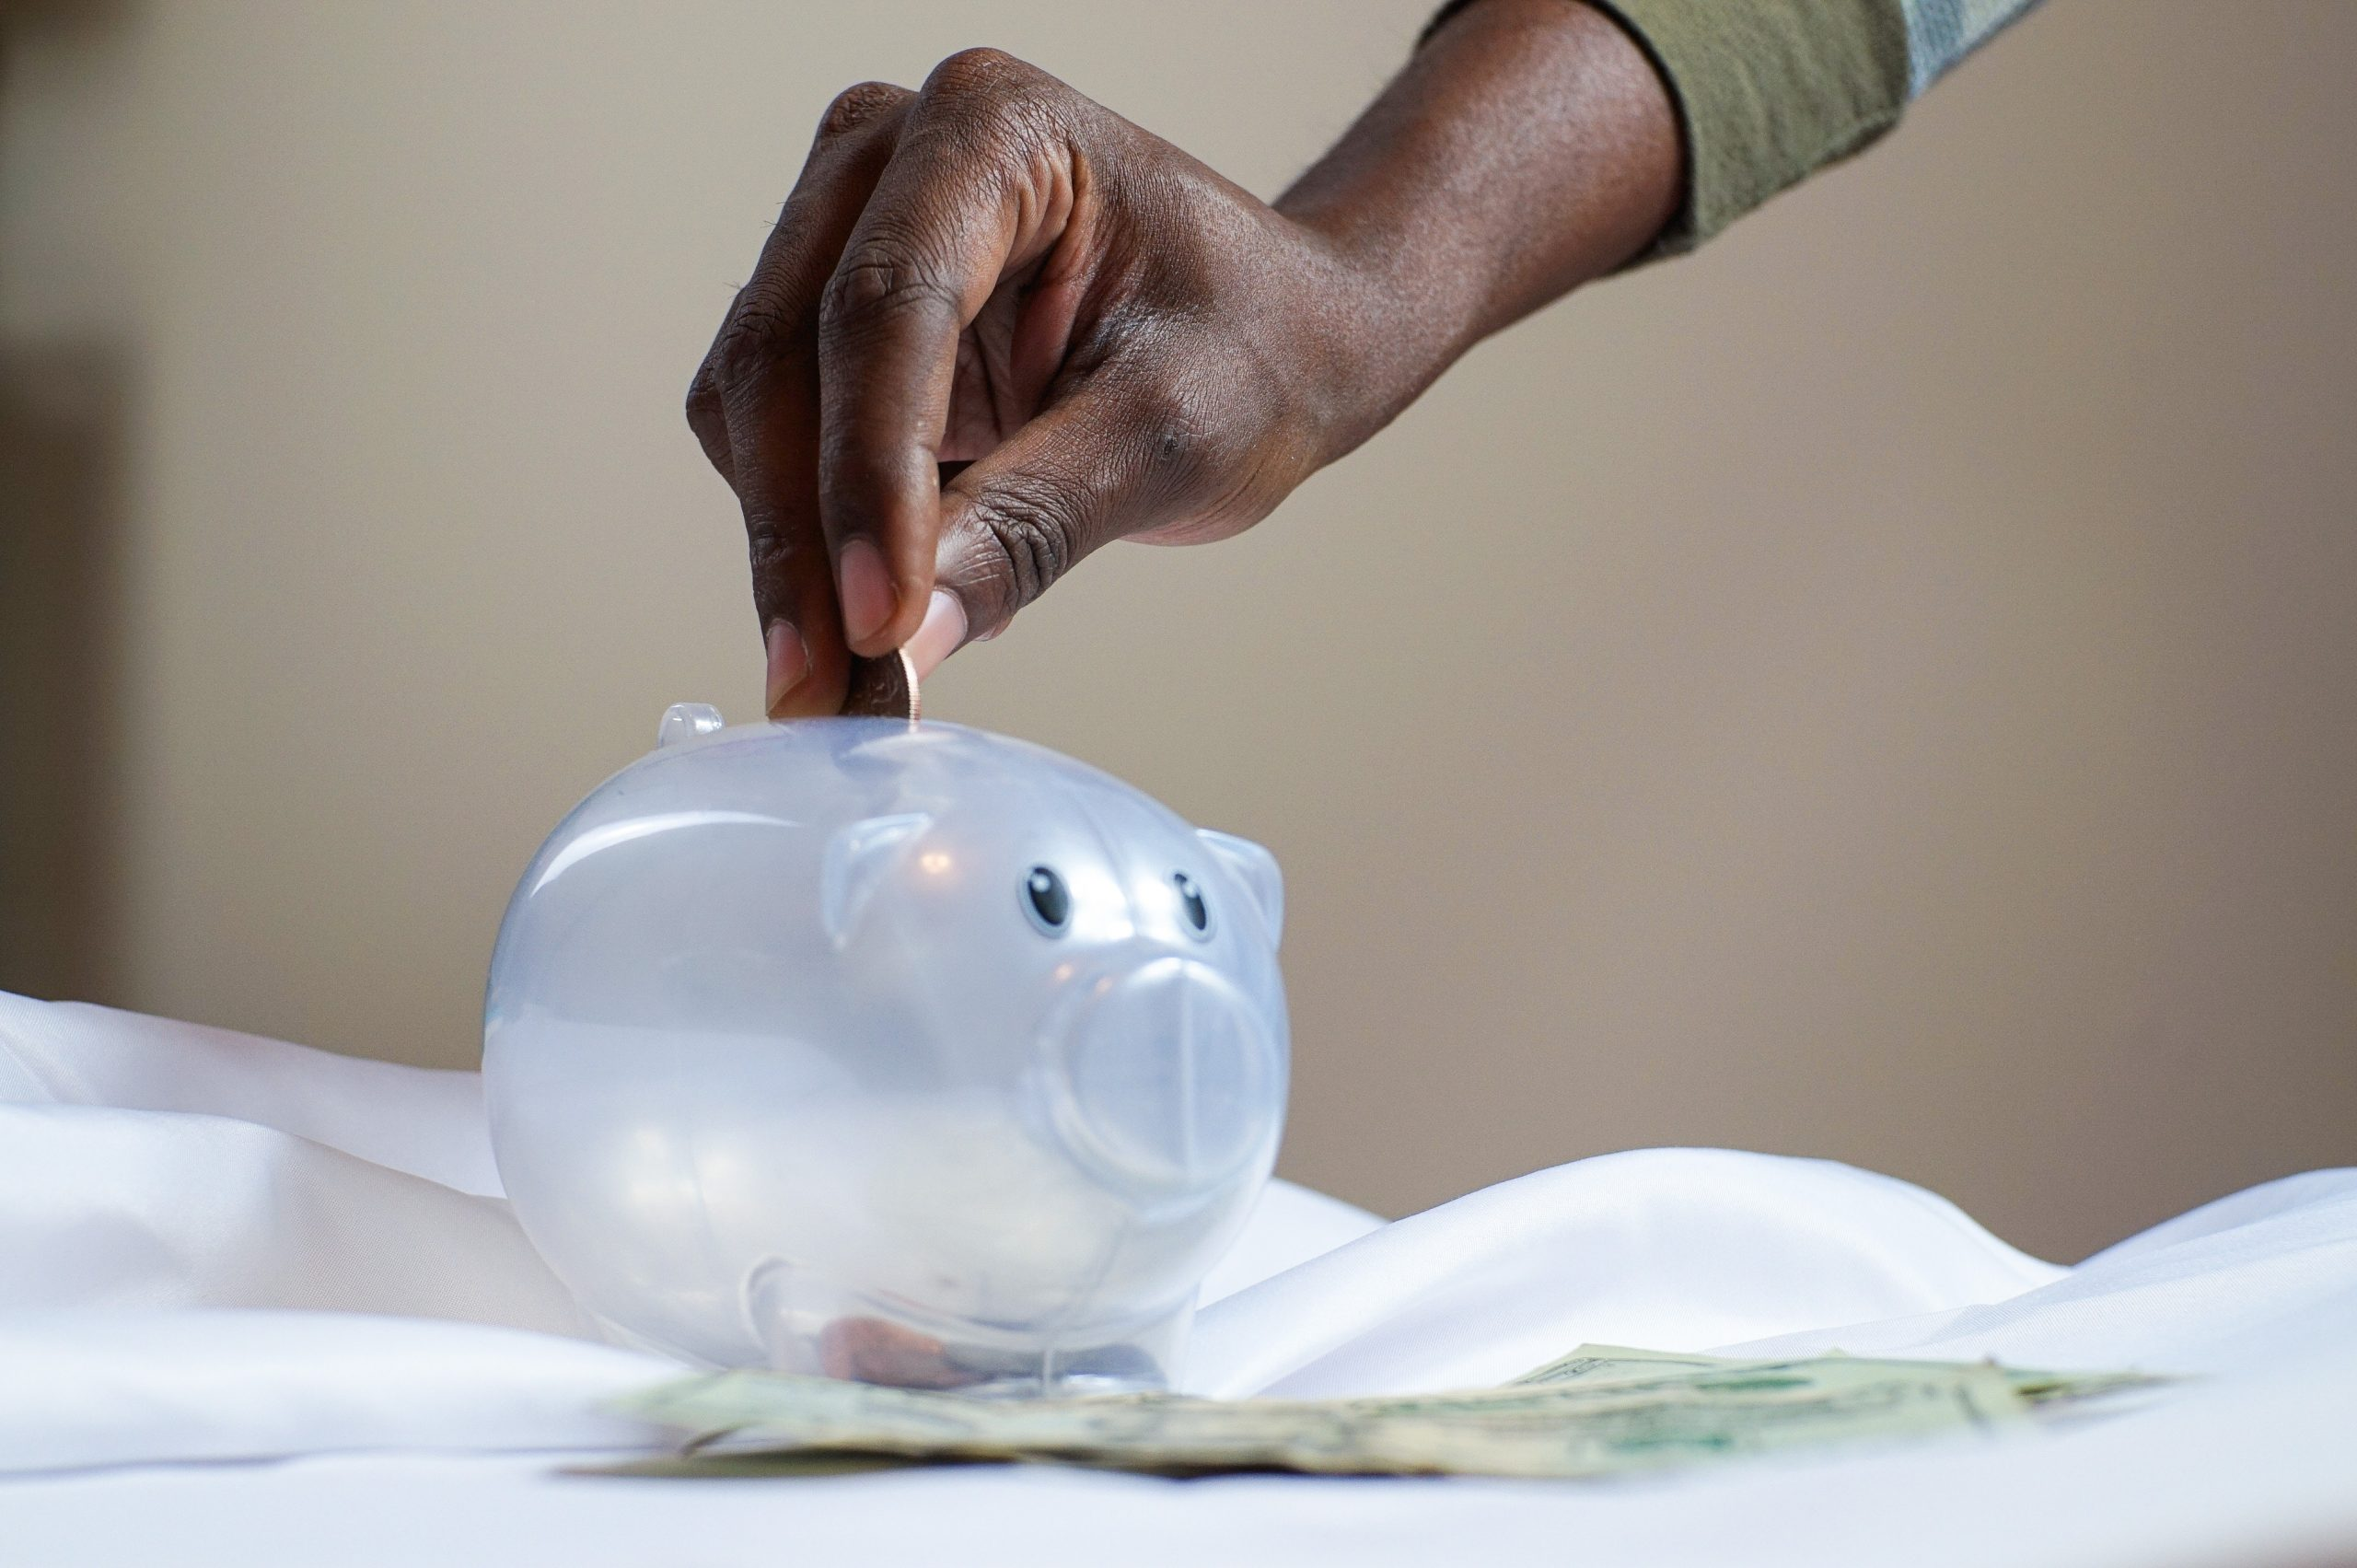 Super Easy Ways To Save Money on Monthly Expenses